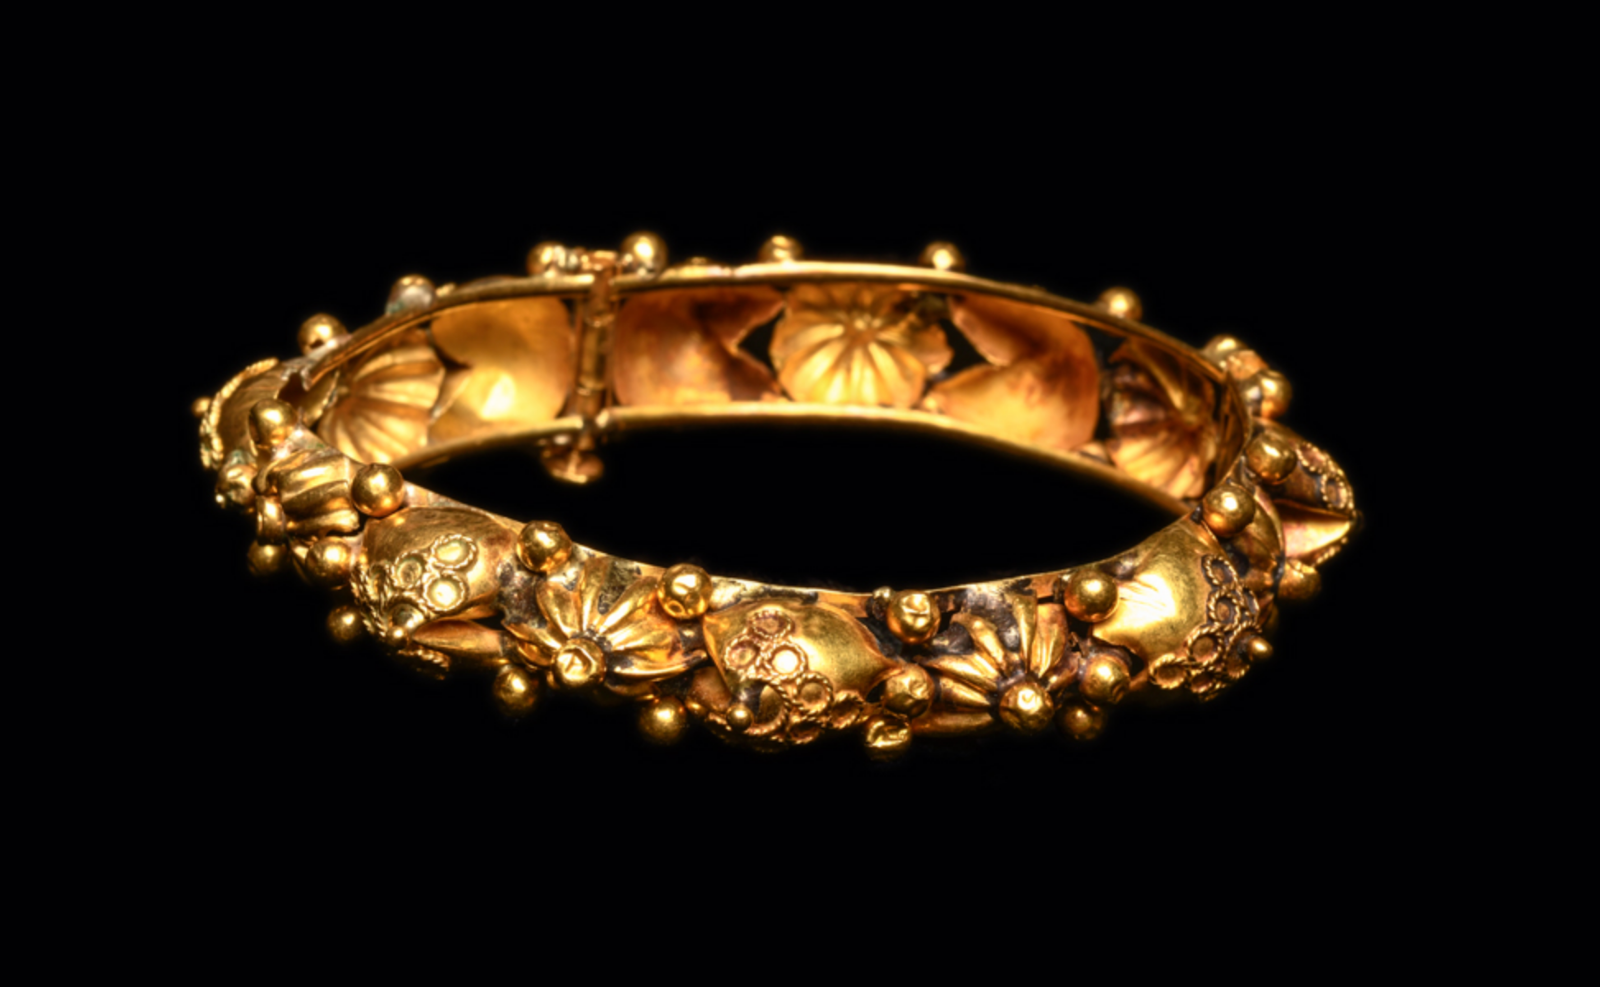 Ancient Byzantine Gold Bracelet Ca. 7th-12th century A.D. Medieval Jewelry 4